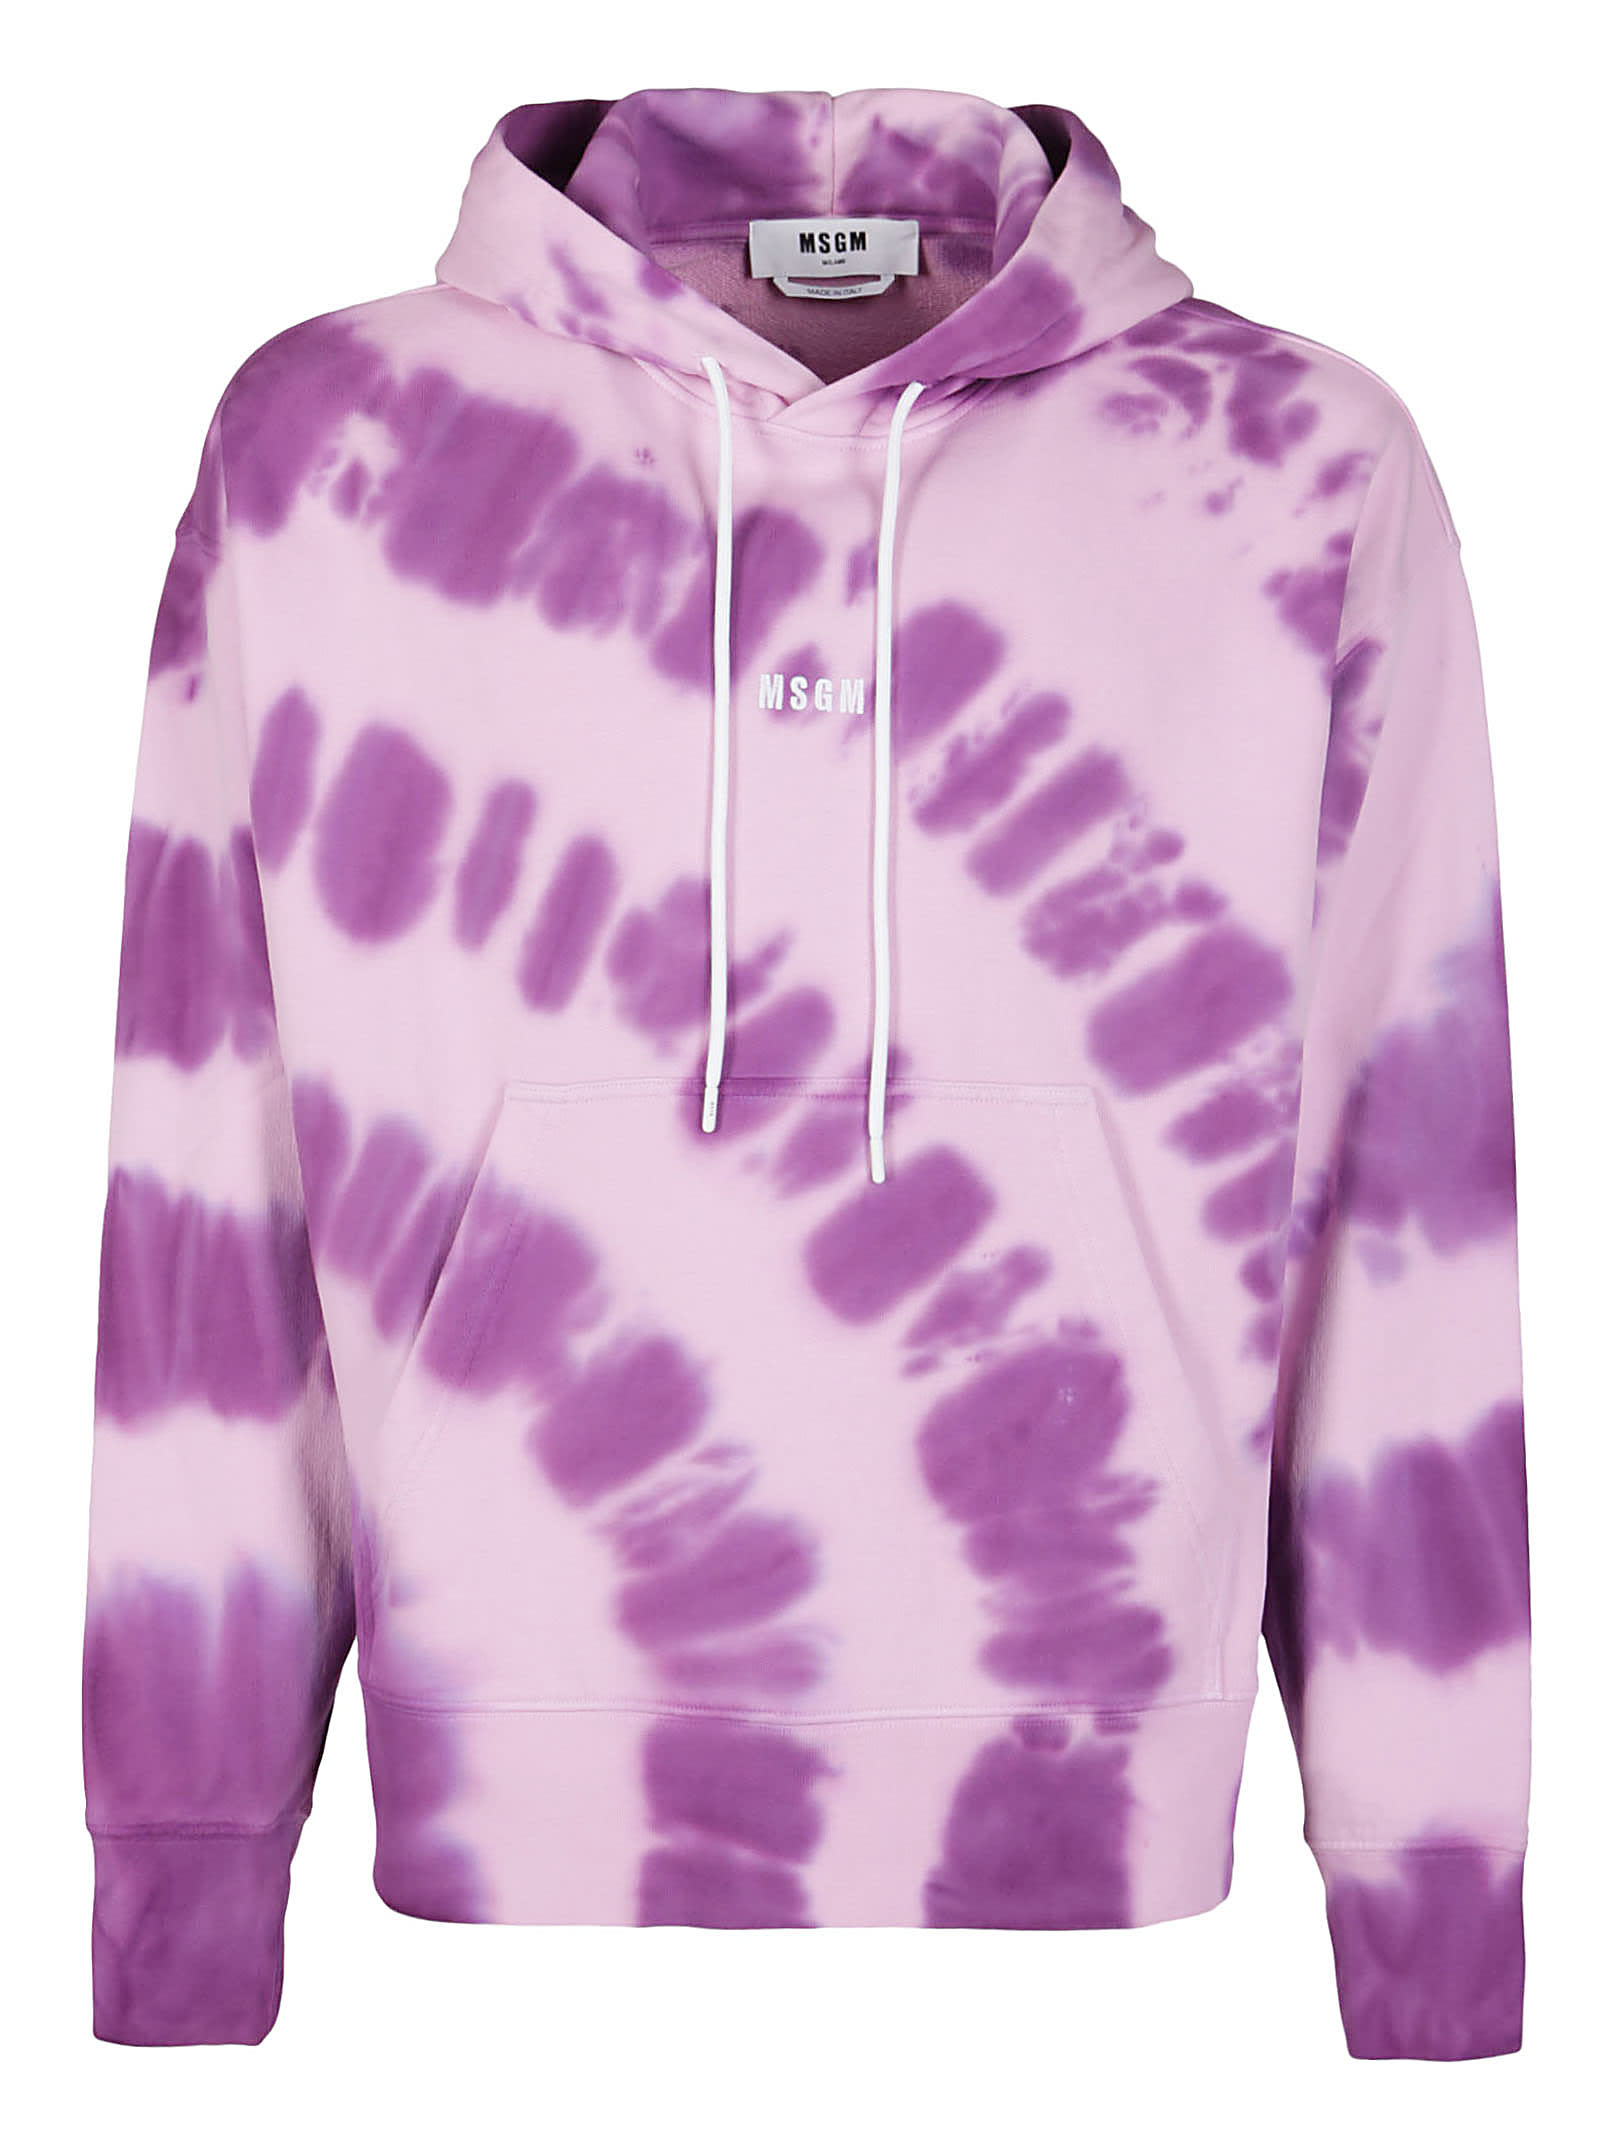 Msgm Cottons PURPLE COTTON SWEATSHIRT